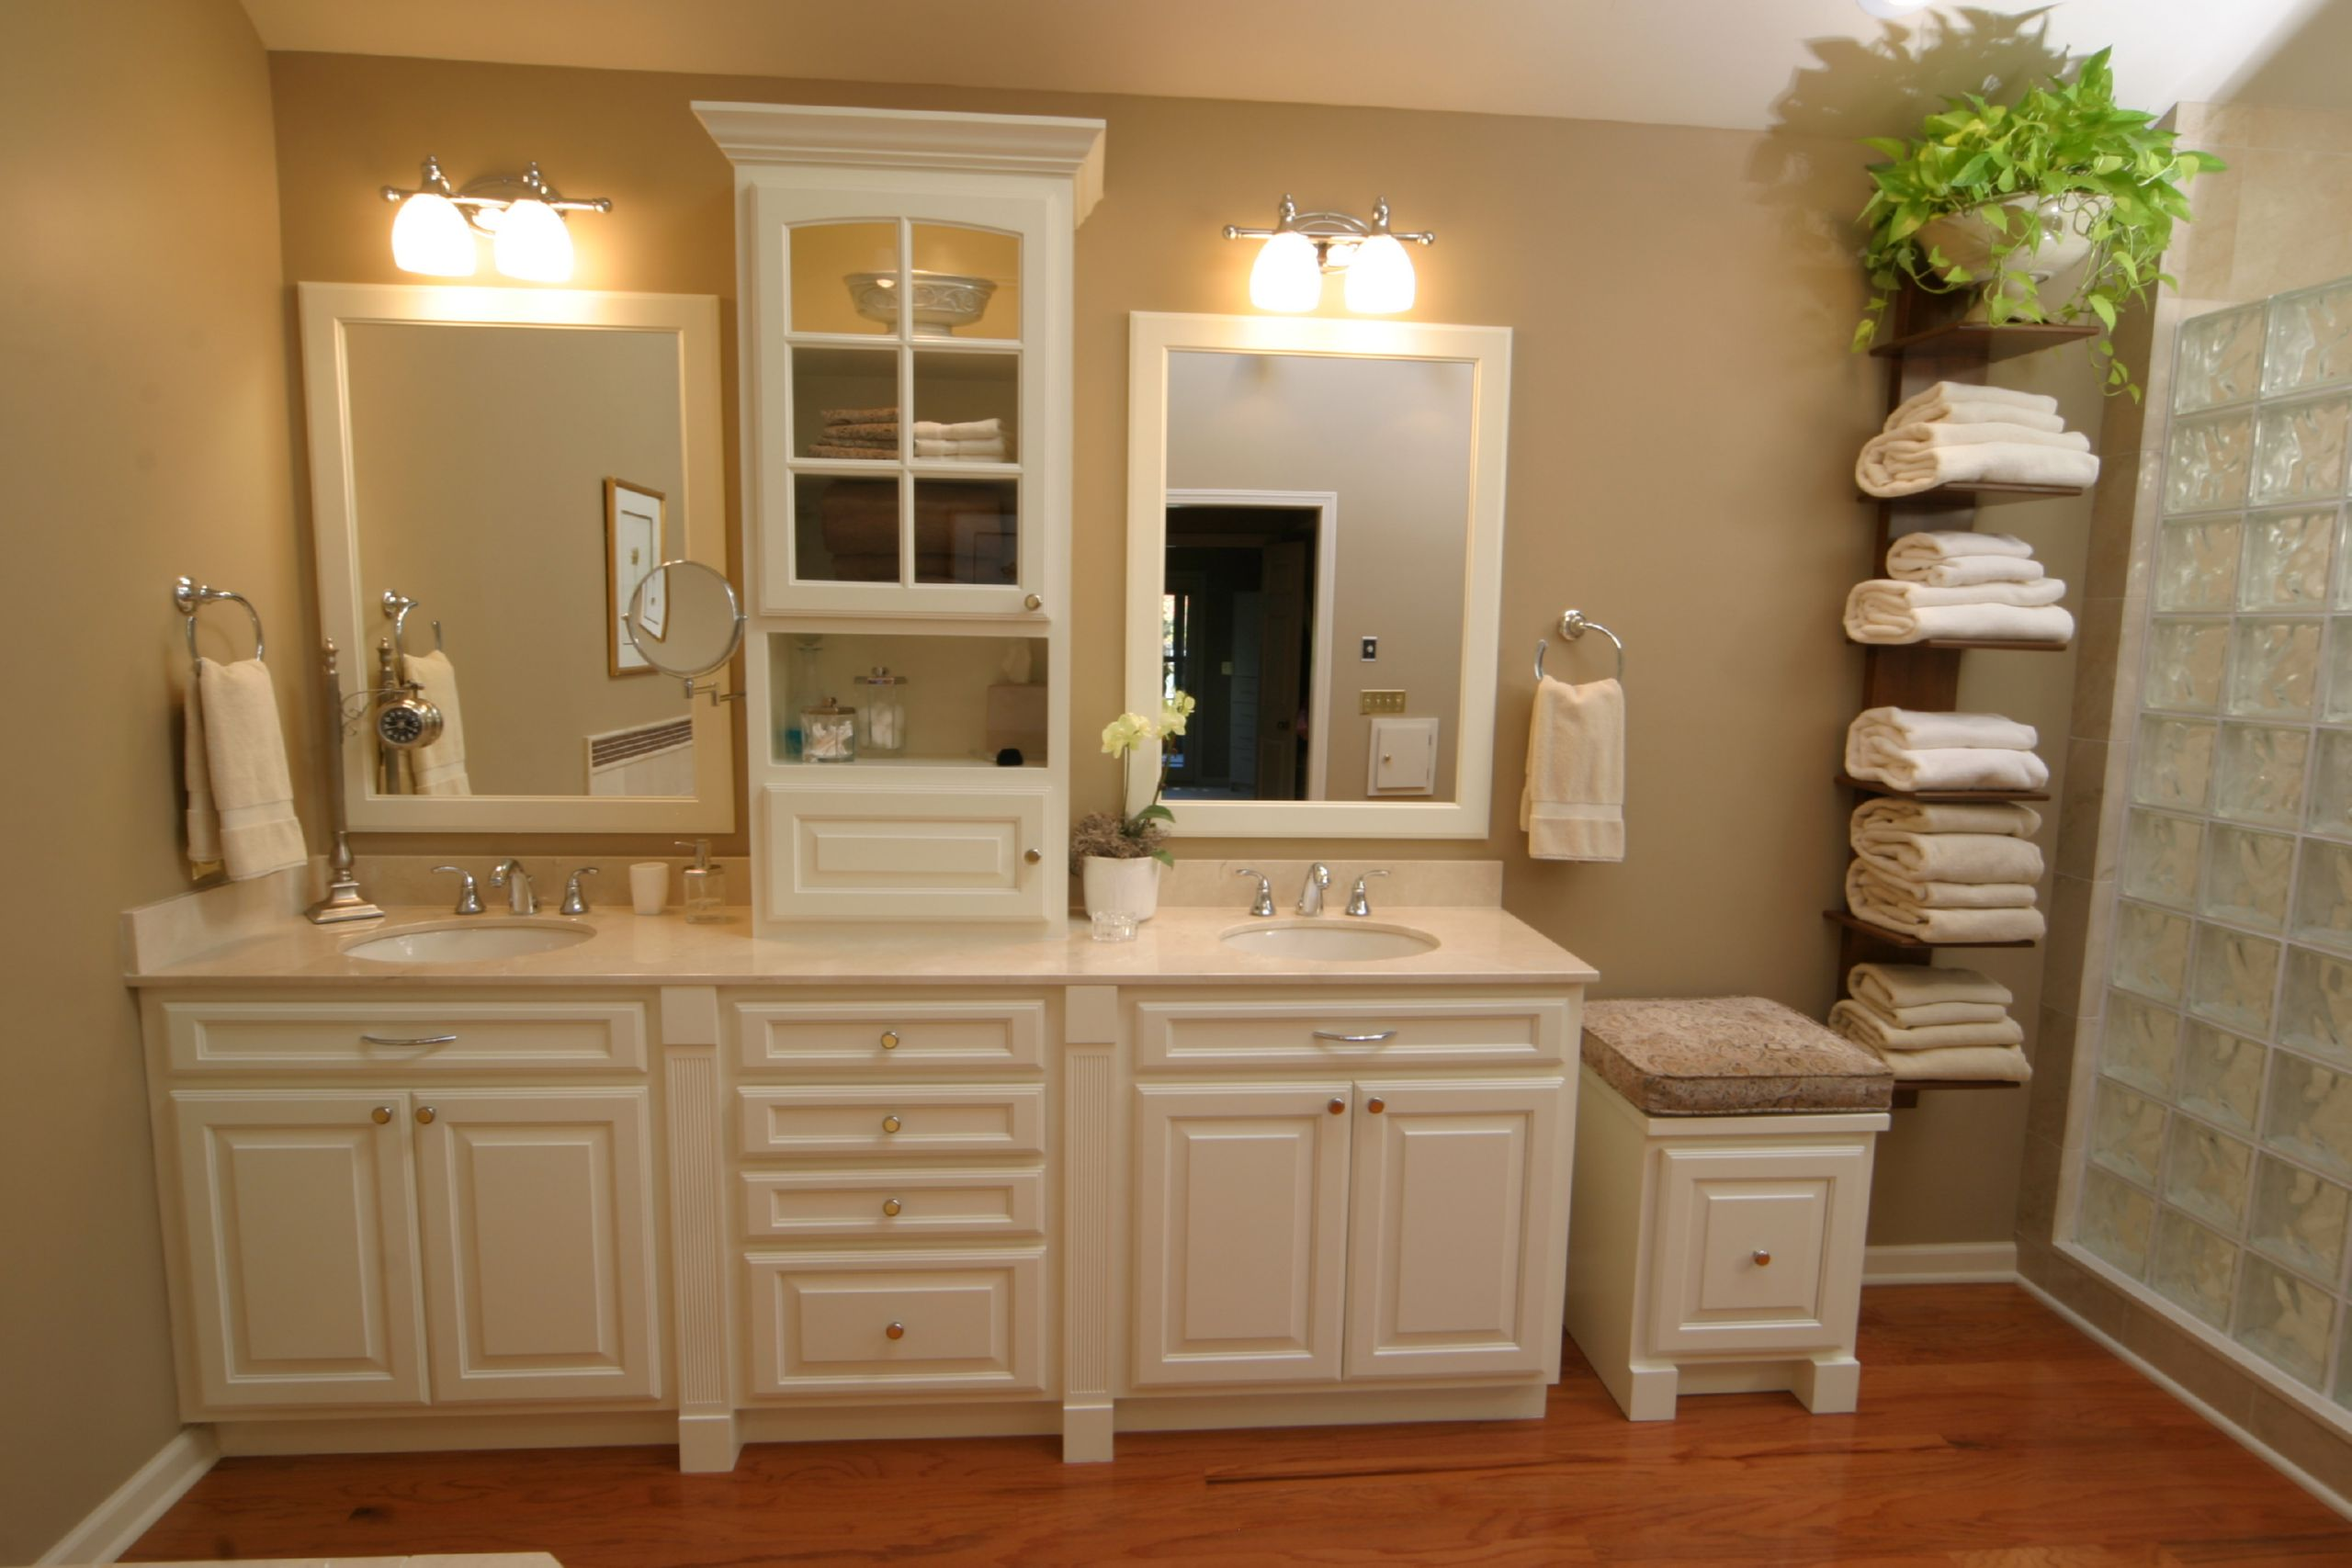 Bathroom remodeling bath remodel contractor for Bathroom remodel picture gallery